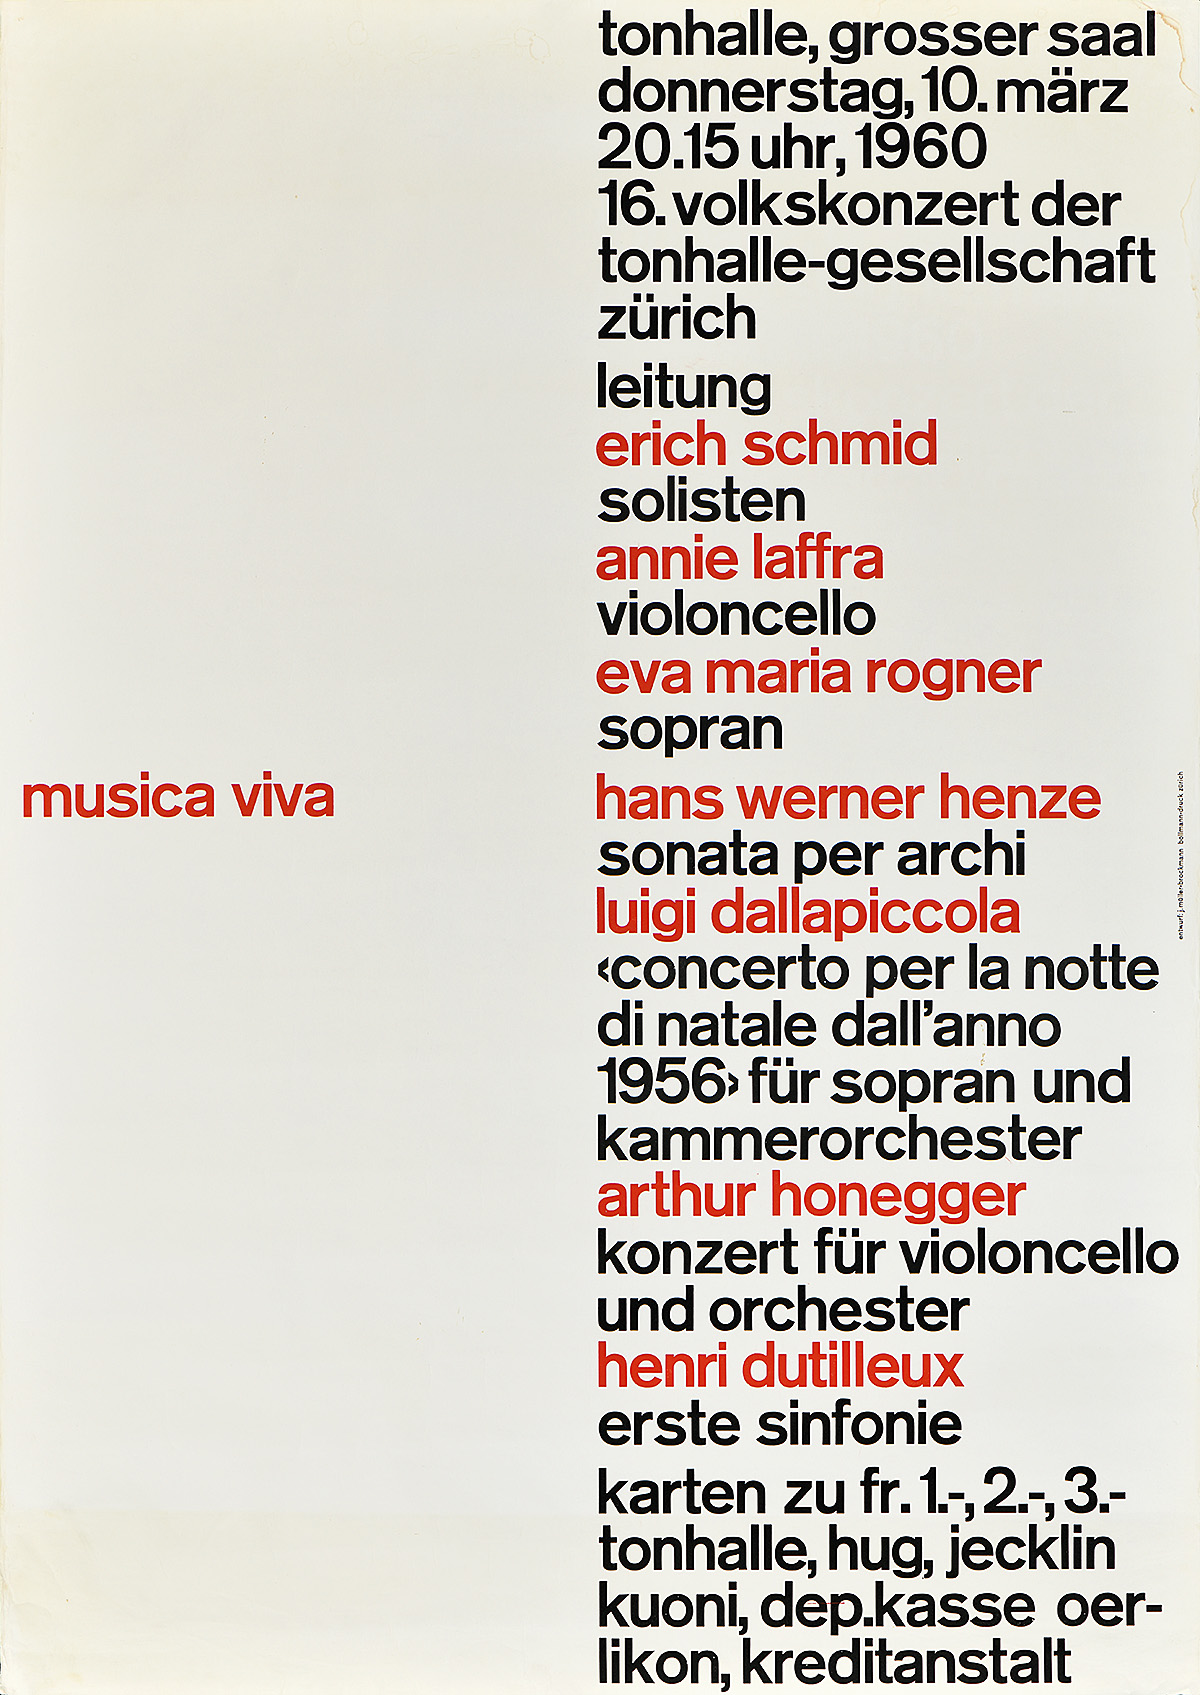 type-based poster for a music festival listing performers in black and red text against a white background